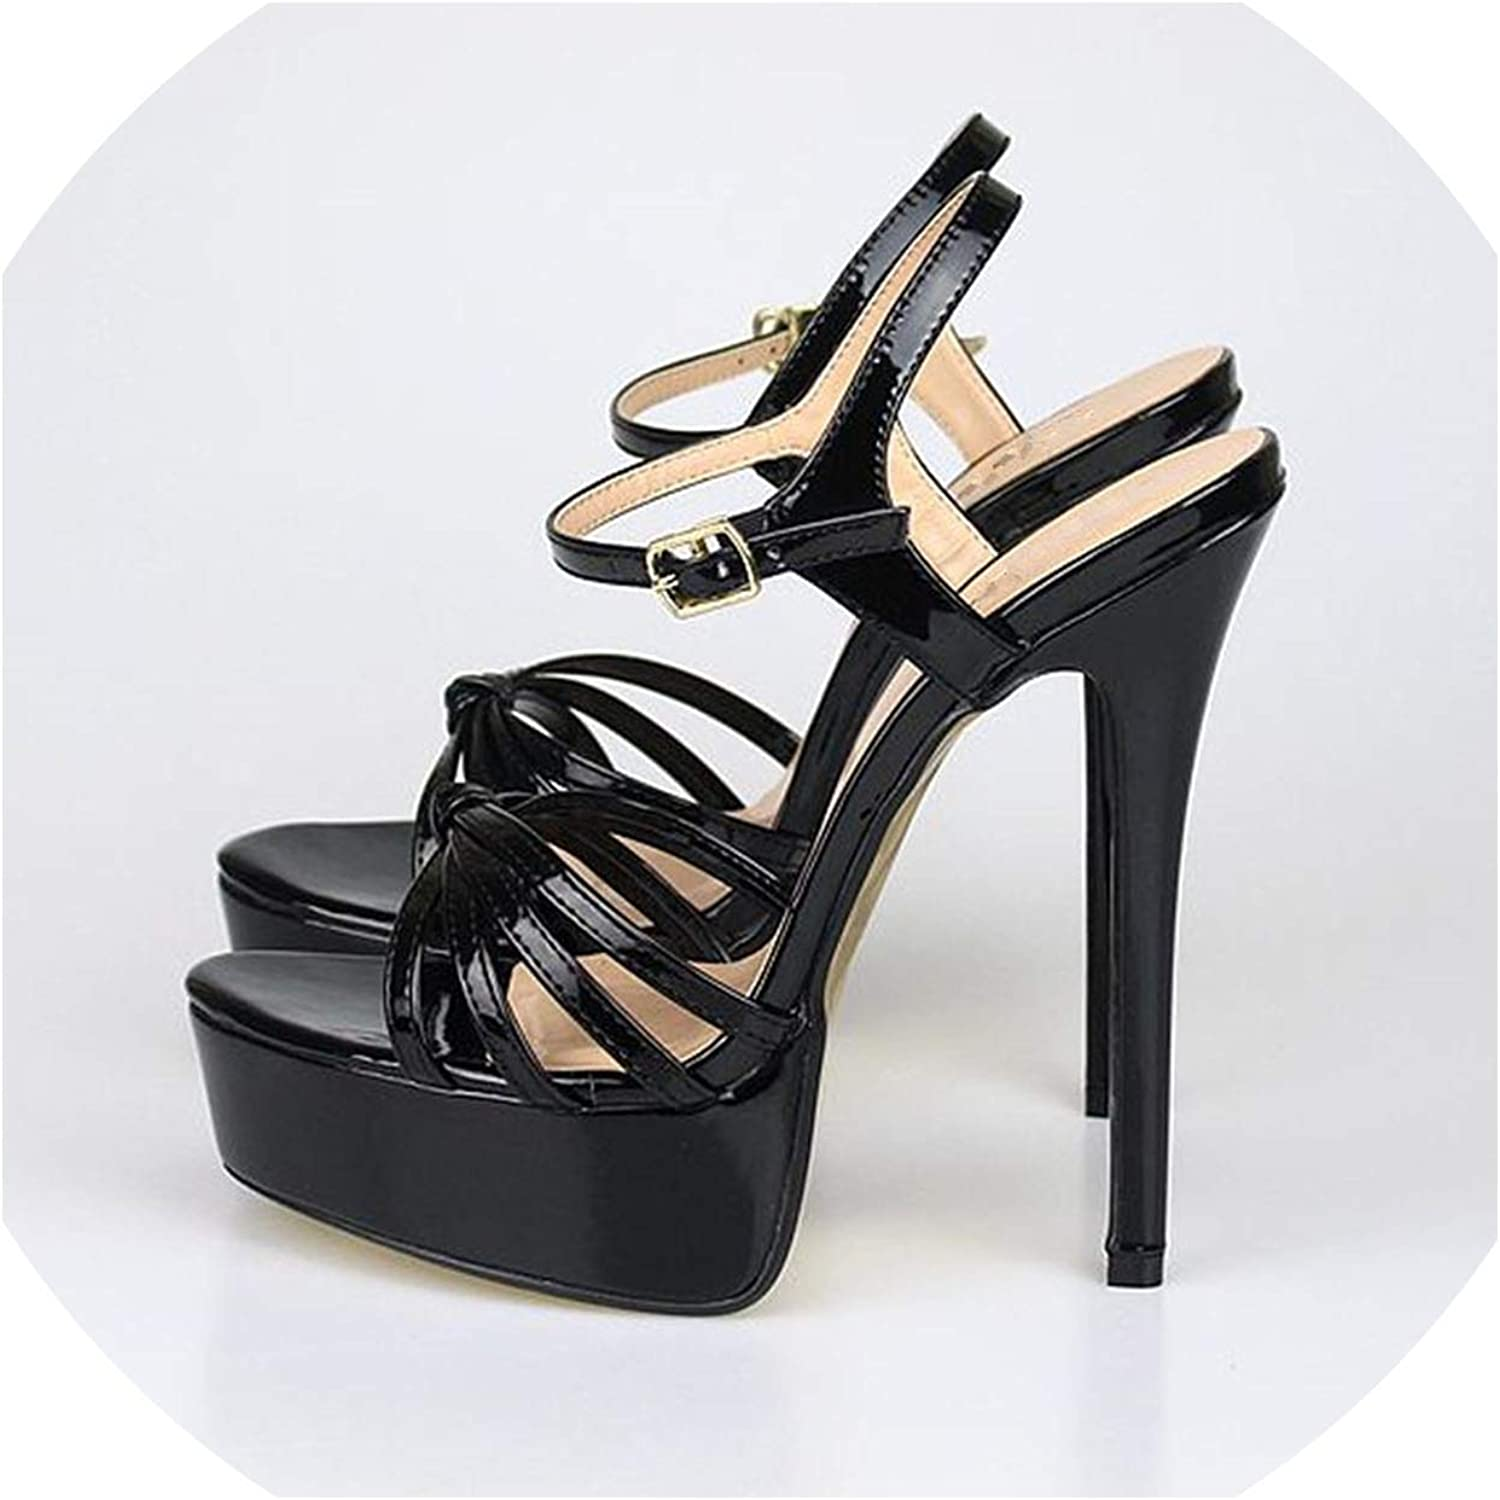 Summer Gladiator Women Sandals Sexy Extreme High Heels Sandal Platform Party Wedding shoes,Black,13.5